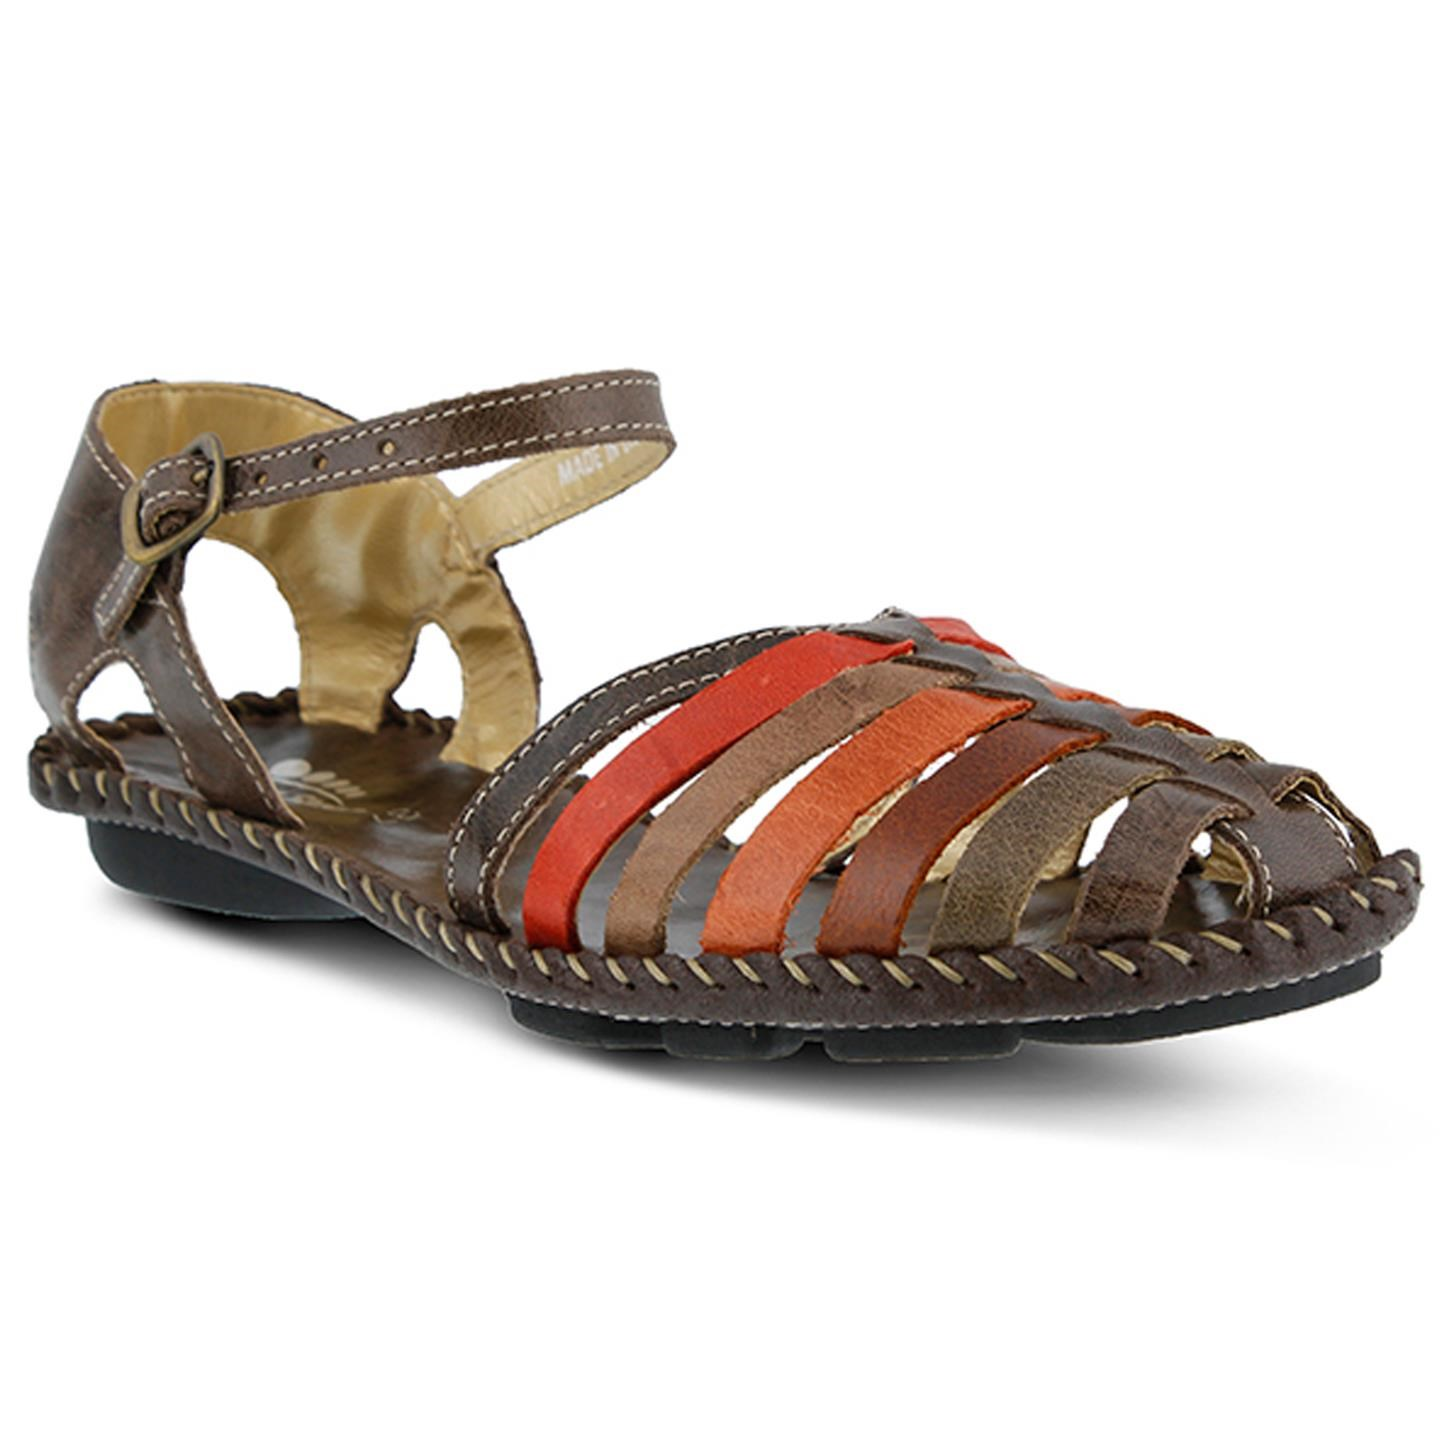 Chilton By Spring Step Brown Womens Leather Sandal 40 EU   9 US Women by Spring Step